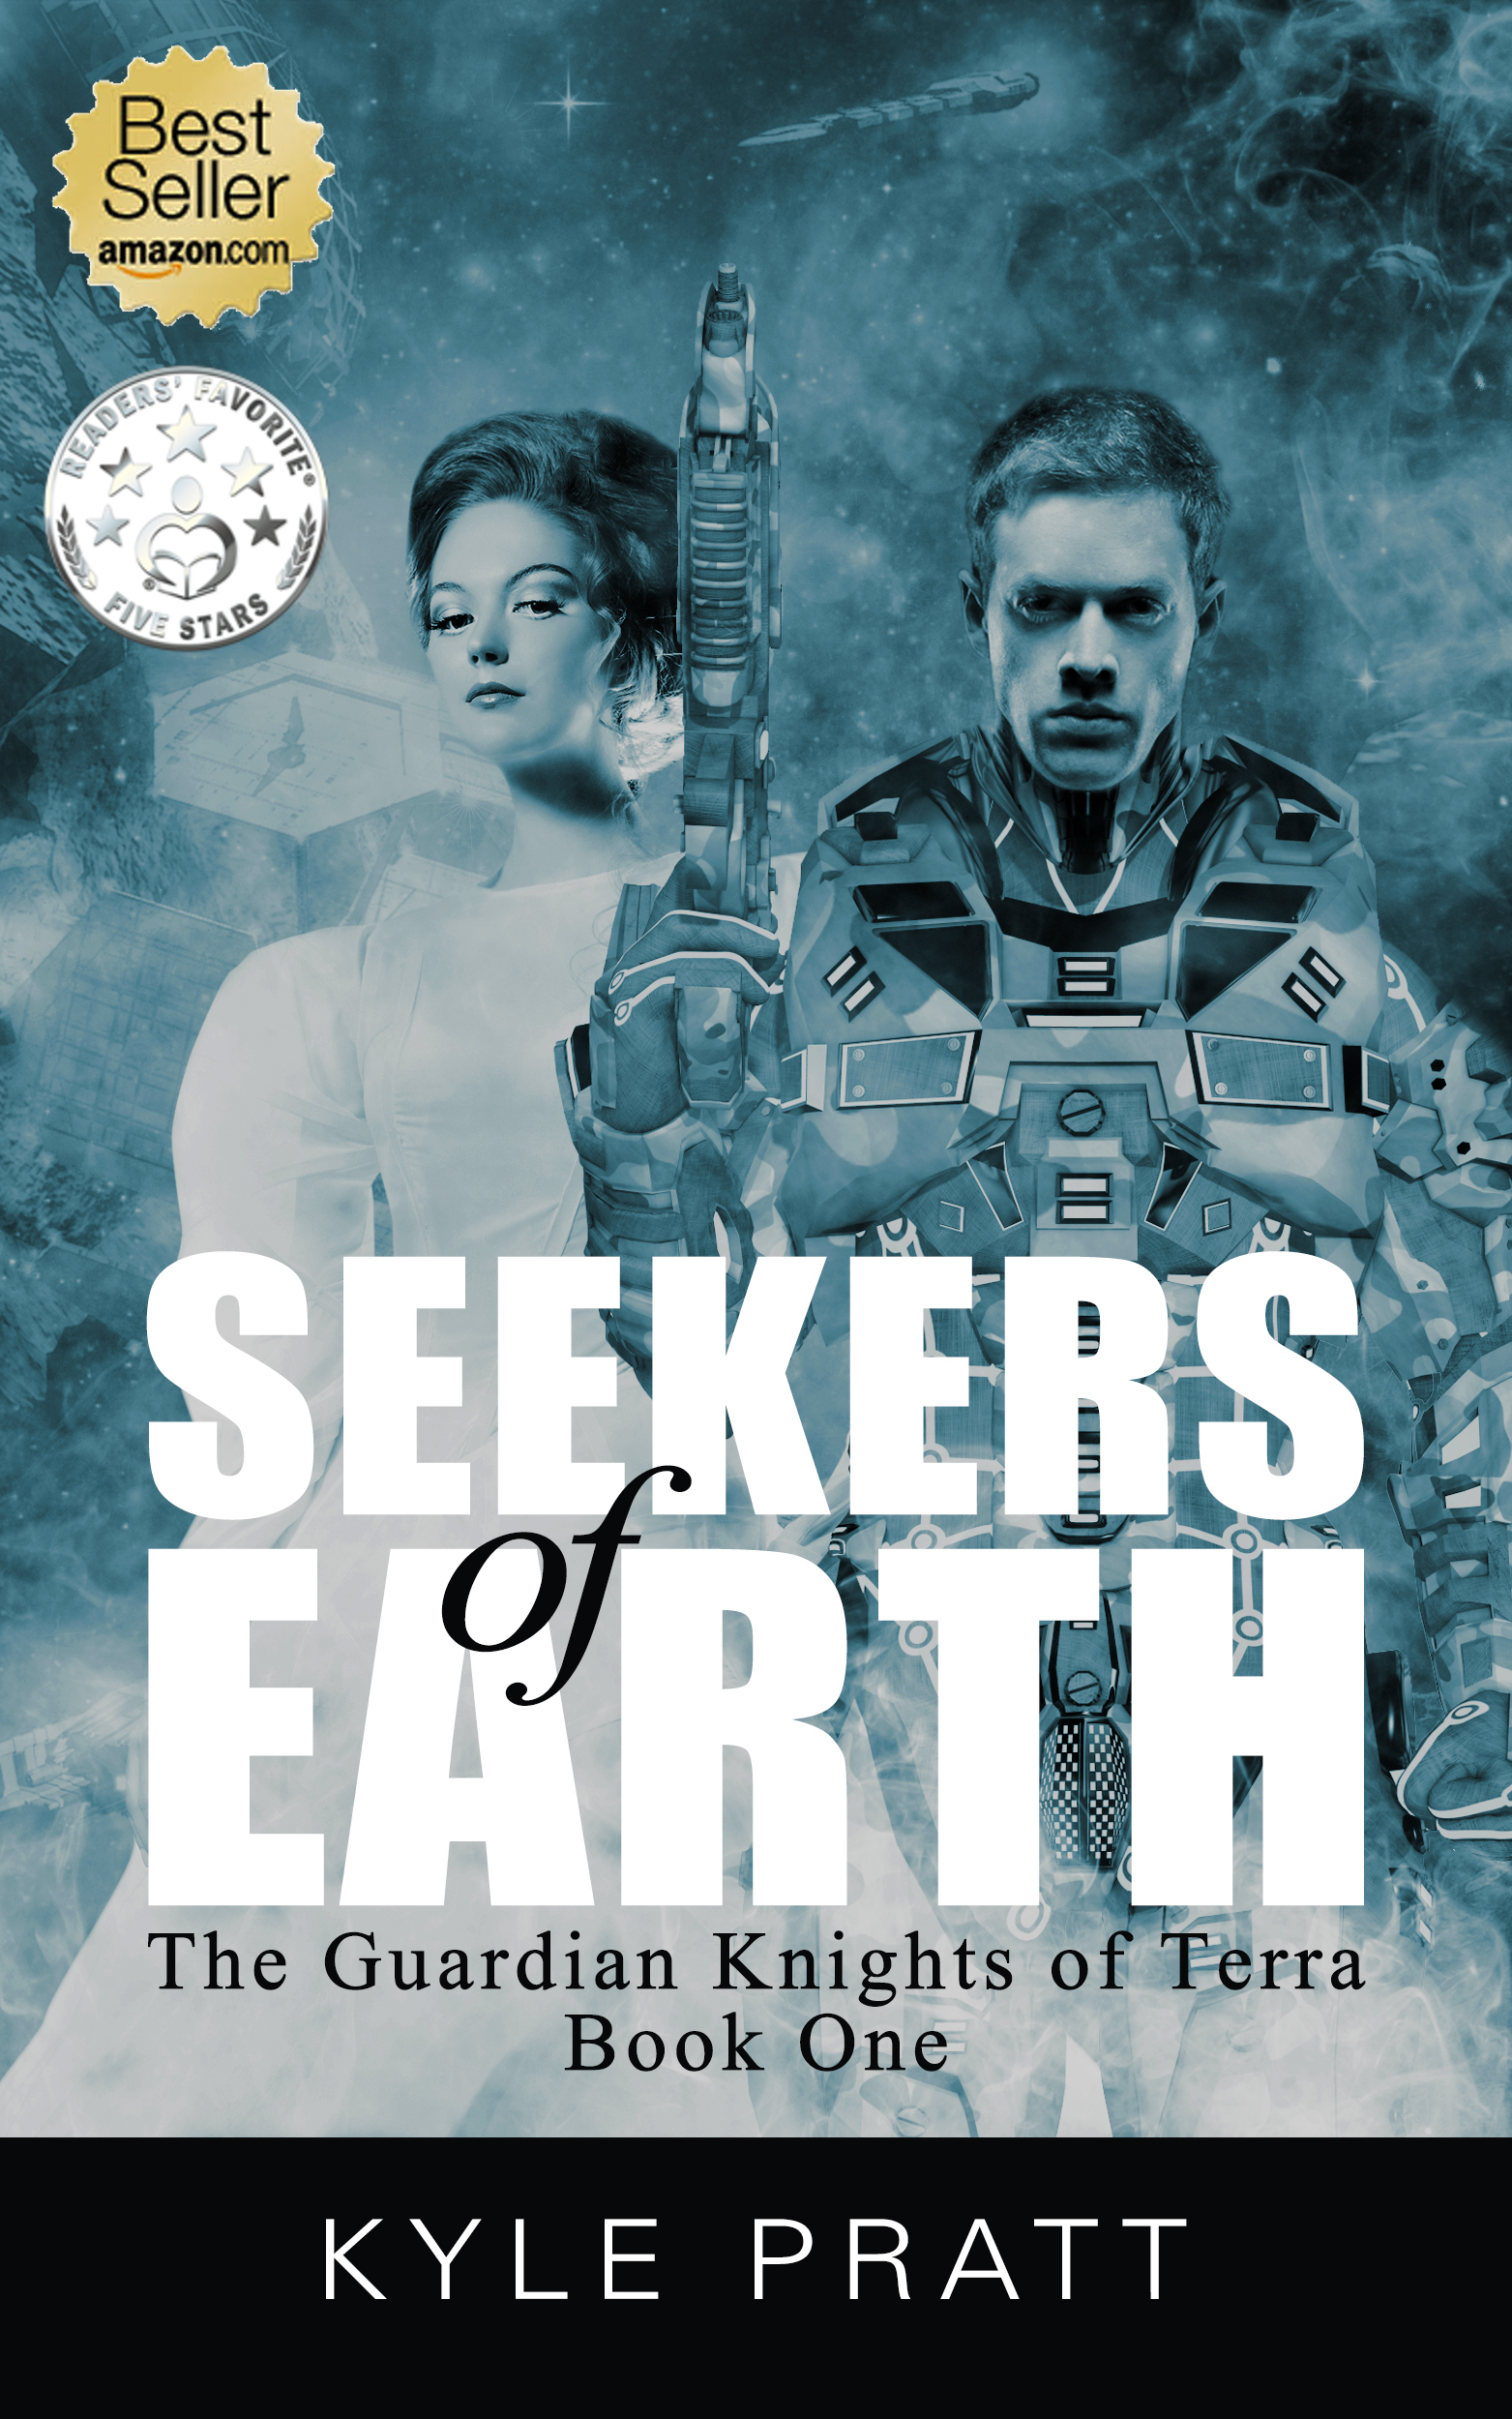 Seekers of Earth    Book one in the Guardian Knights of Terra series.    Awarded Readers Favorite 5-Star Review   Lucas Baldwin, the young son of a powerful lord, is on his first deep space training mission. Advancing through a captured facility he encounters a lunatic girl about his age. Only later does he realize that the girl, Rachel, is speaking English, a long-dead language. Rachel talks of an Earth still in existence and more advanced than the horse-and-buggy world that had supposedly been destroyed.